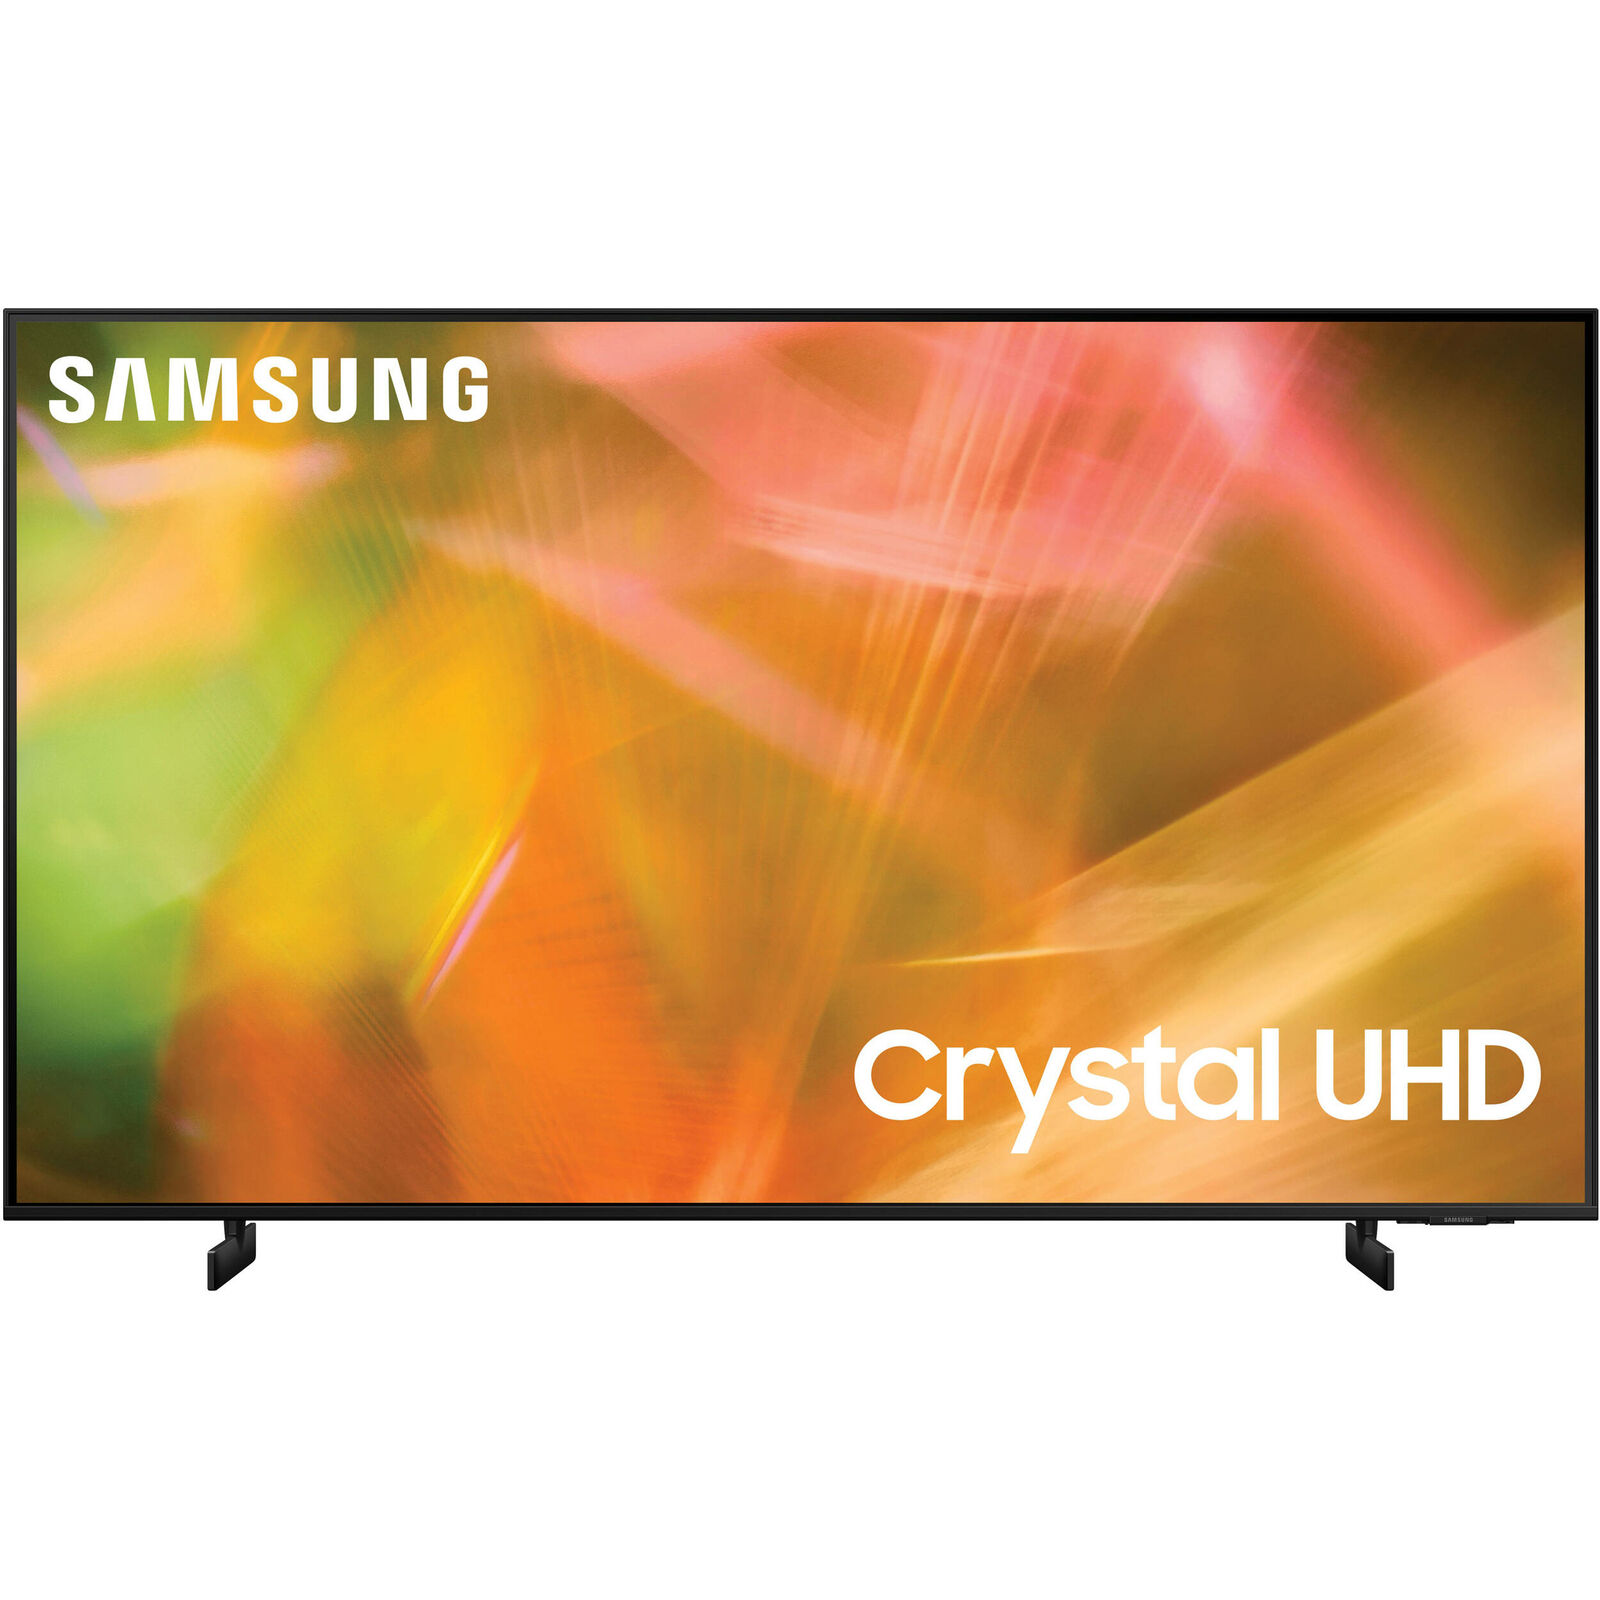 UN43AU8000 electronic_express Samsung AU8000 43 4K Ultra HD HDR Smart LED TV - 2021 Model